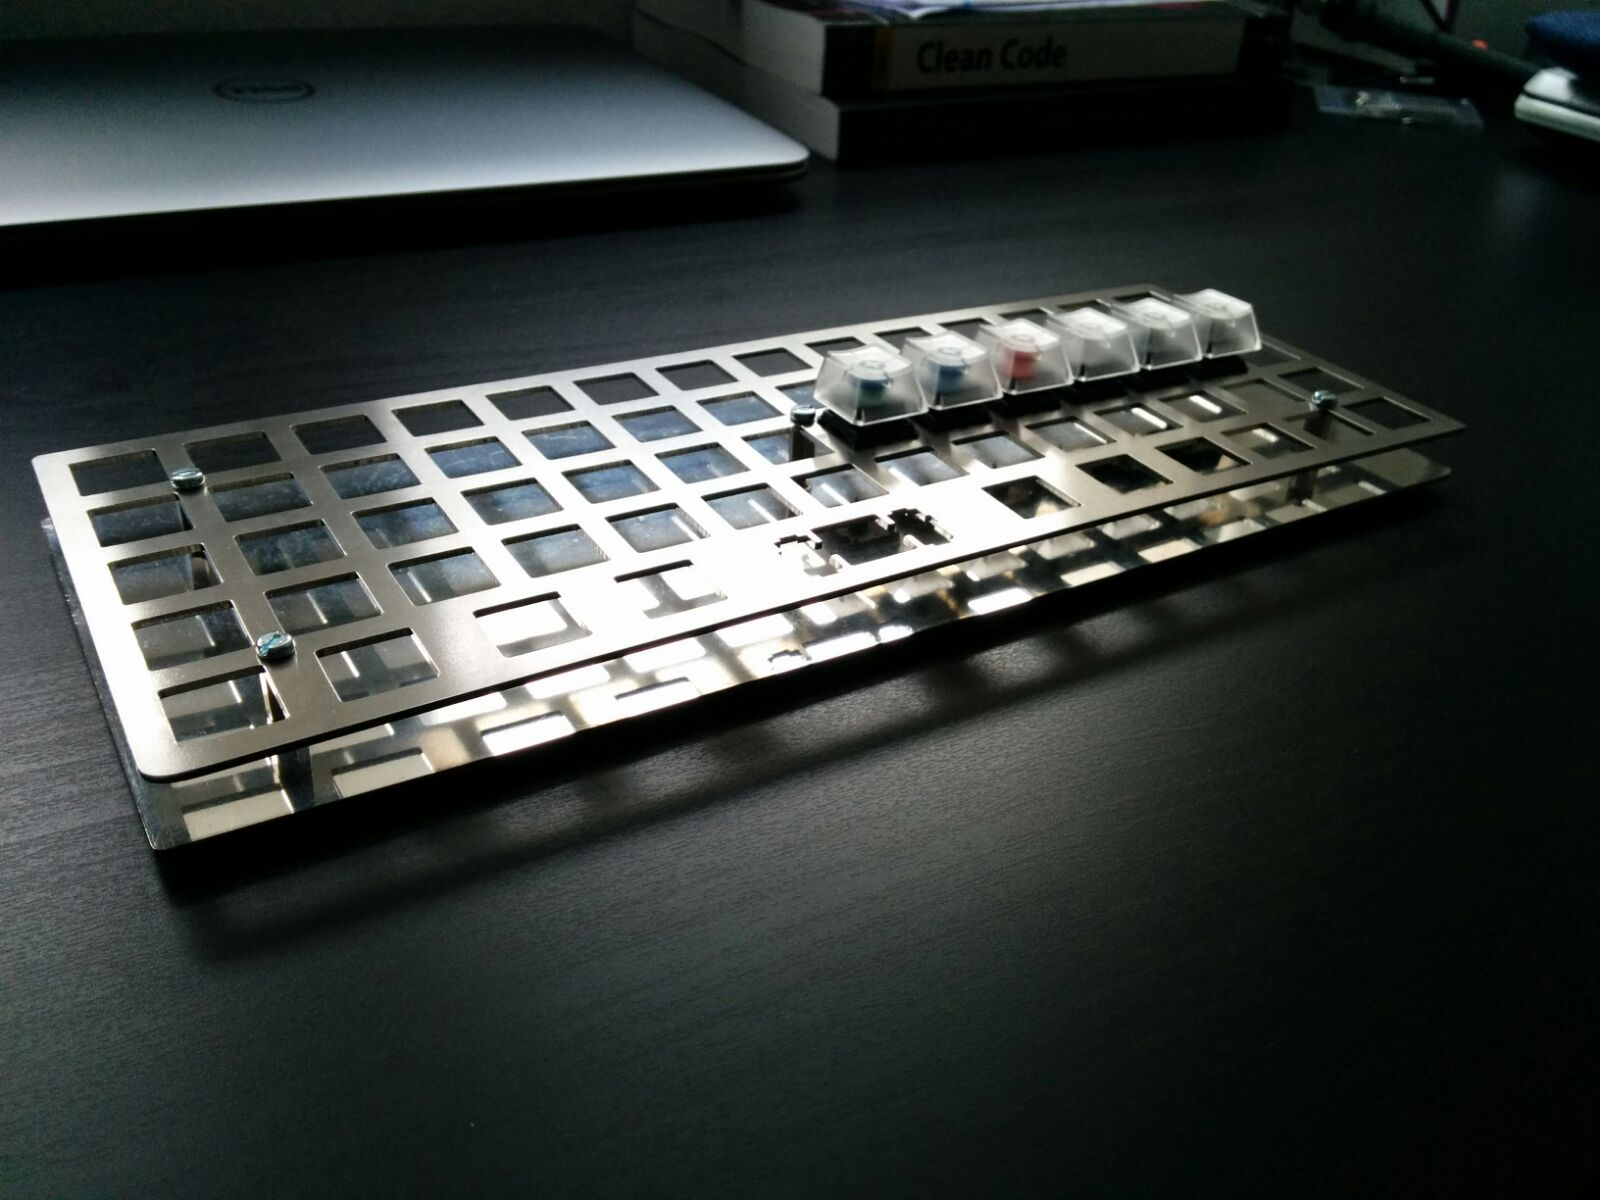 Picture of the keyboard being built by David